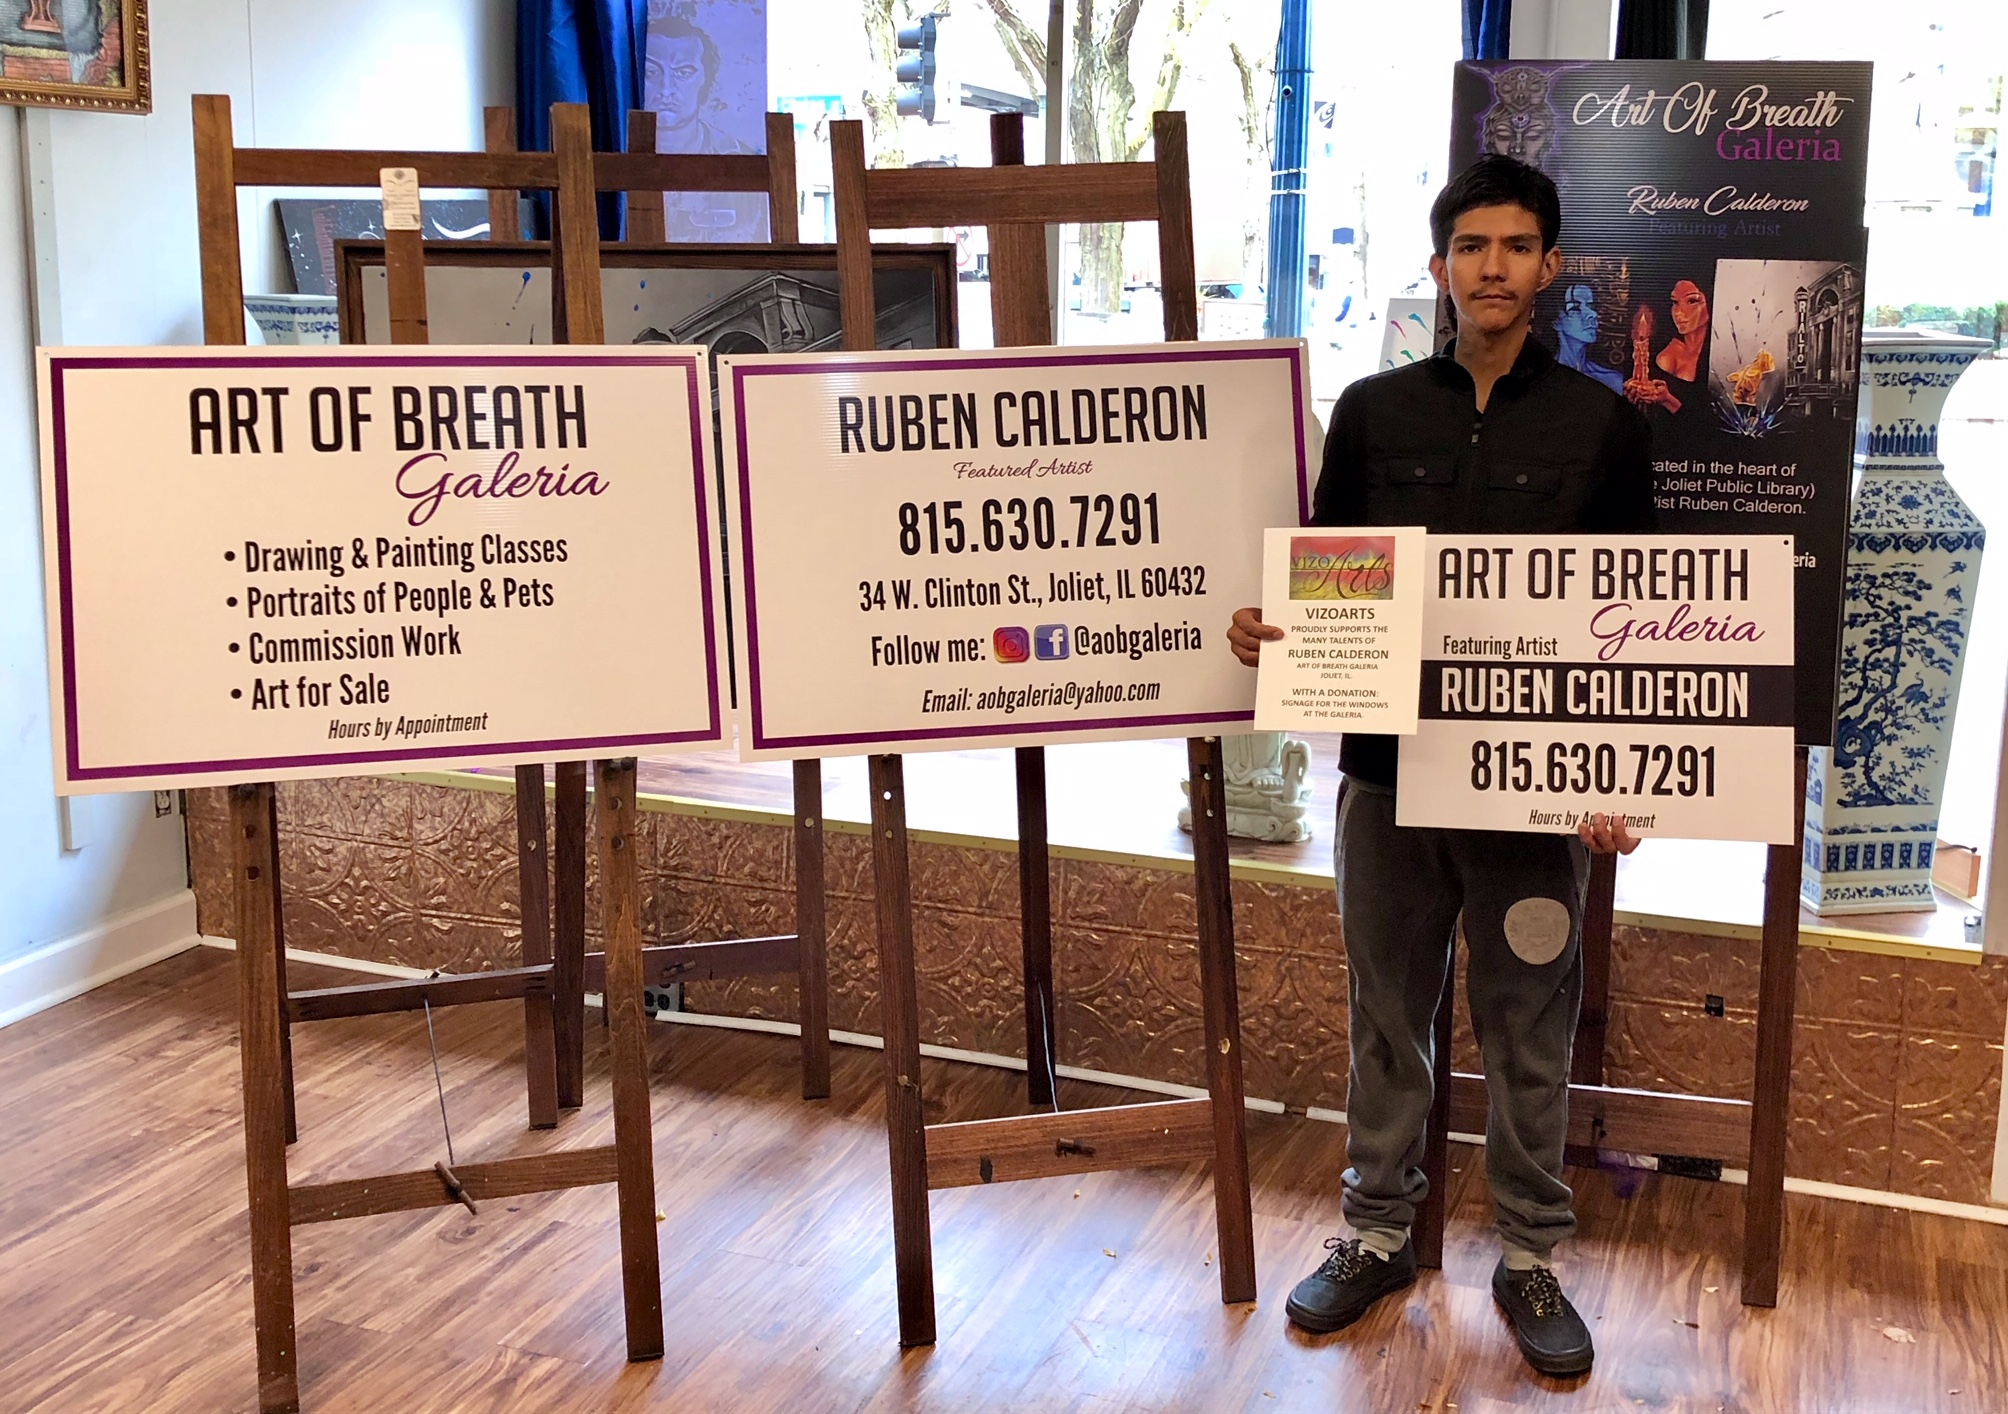 VizoArts funded the new signage for the front windows at  Art of Breath Galeria  in Joliet, IL.